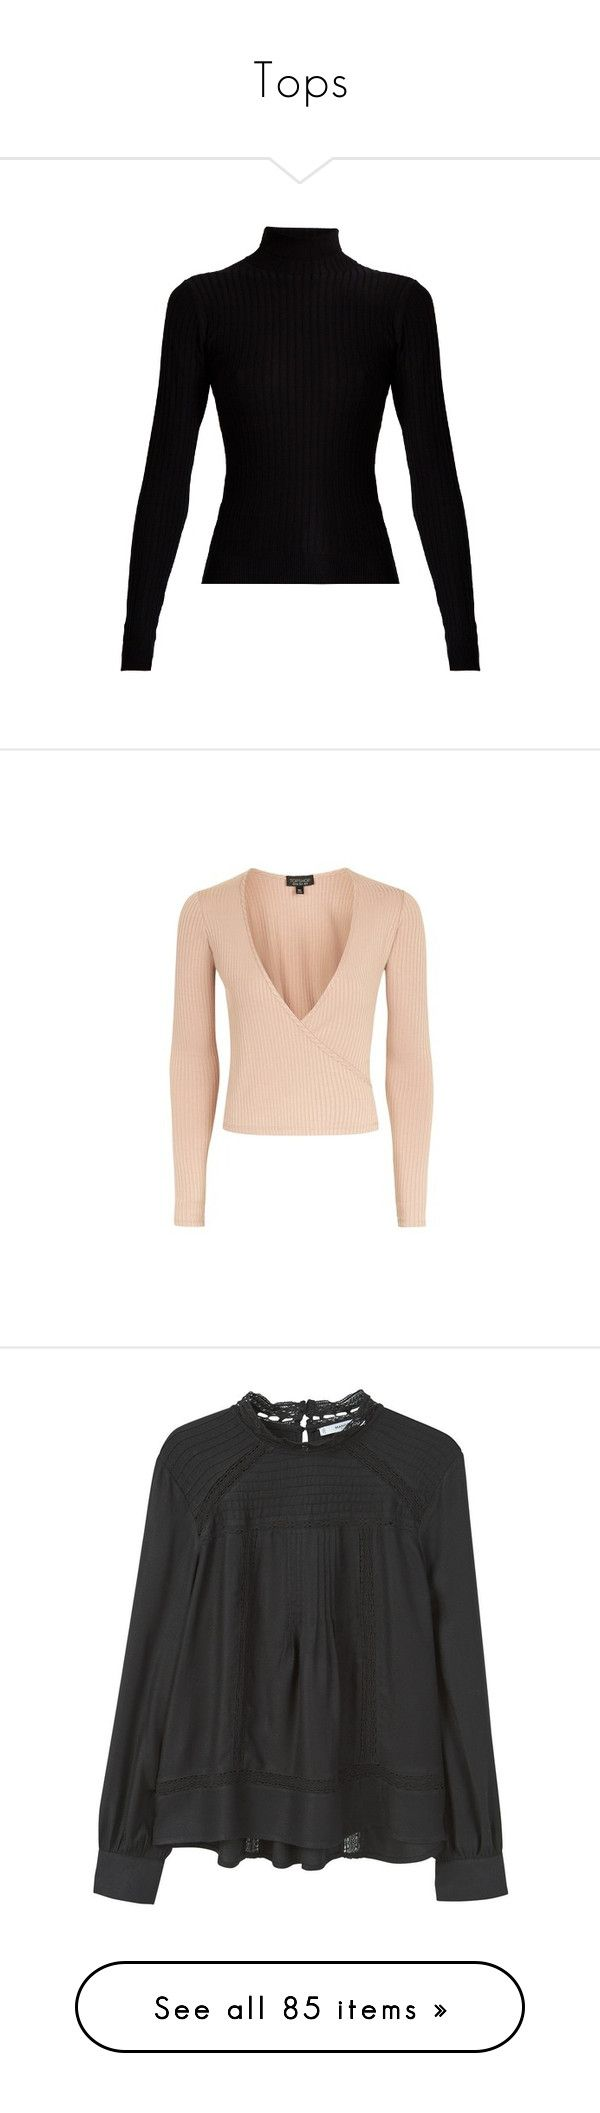 """Tops"" by juliietteprt ❤ liked on Polyvore featuring tops, sweaters, black, roll neck top, long sleeve stretch top, roll neck sweater, ribbed knit sweater, ribbed knit top, coral and wrap style top"